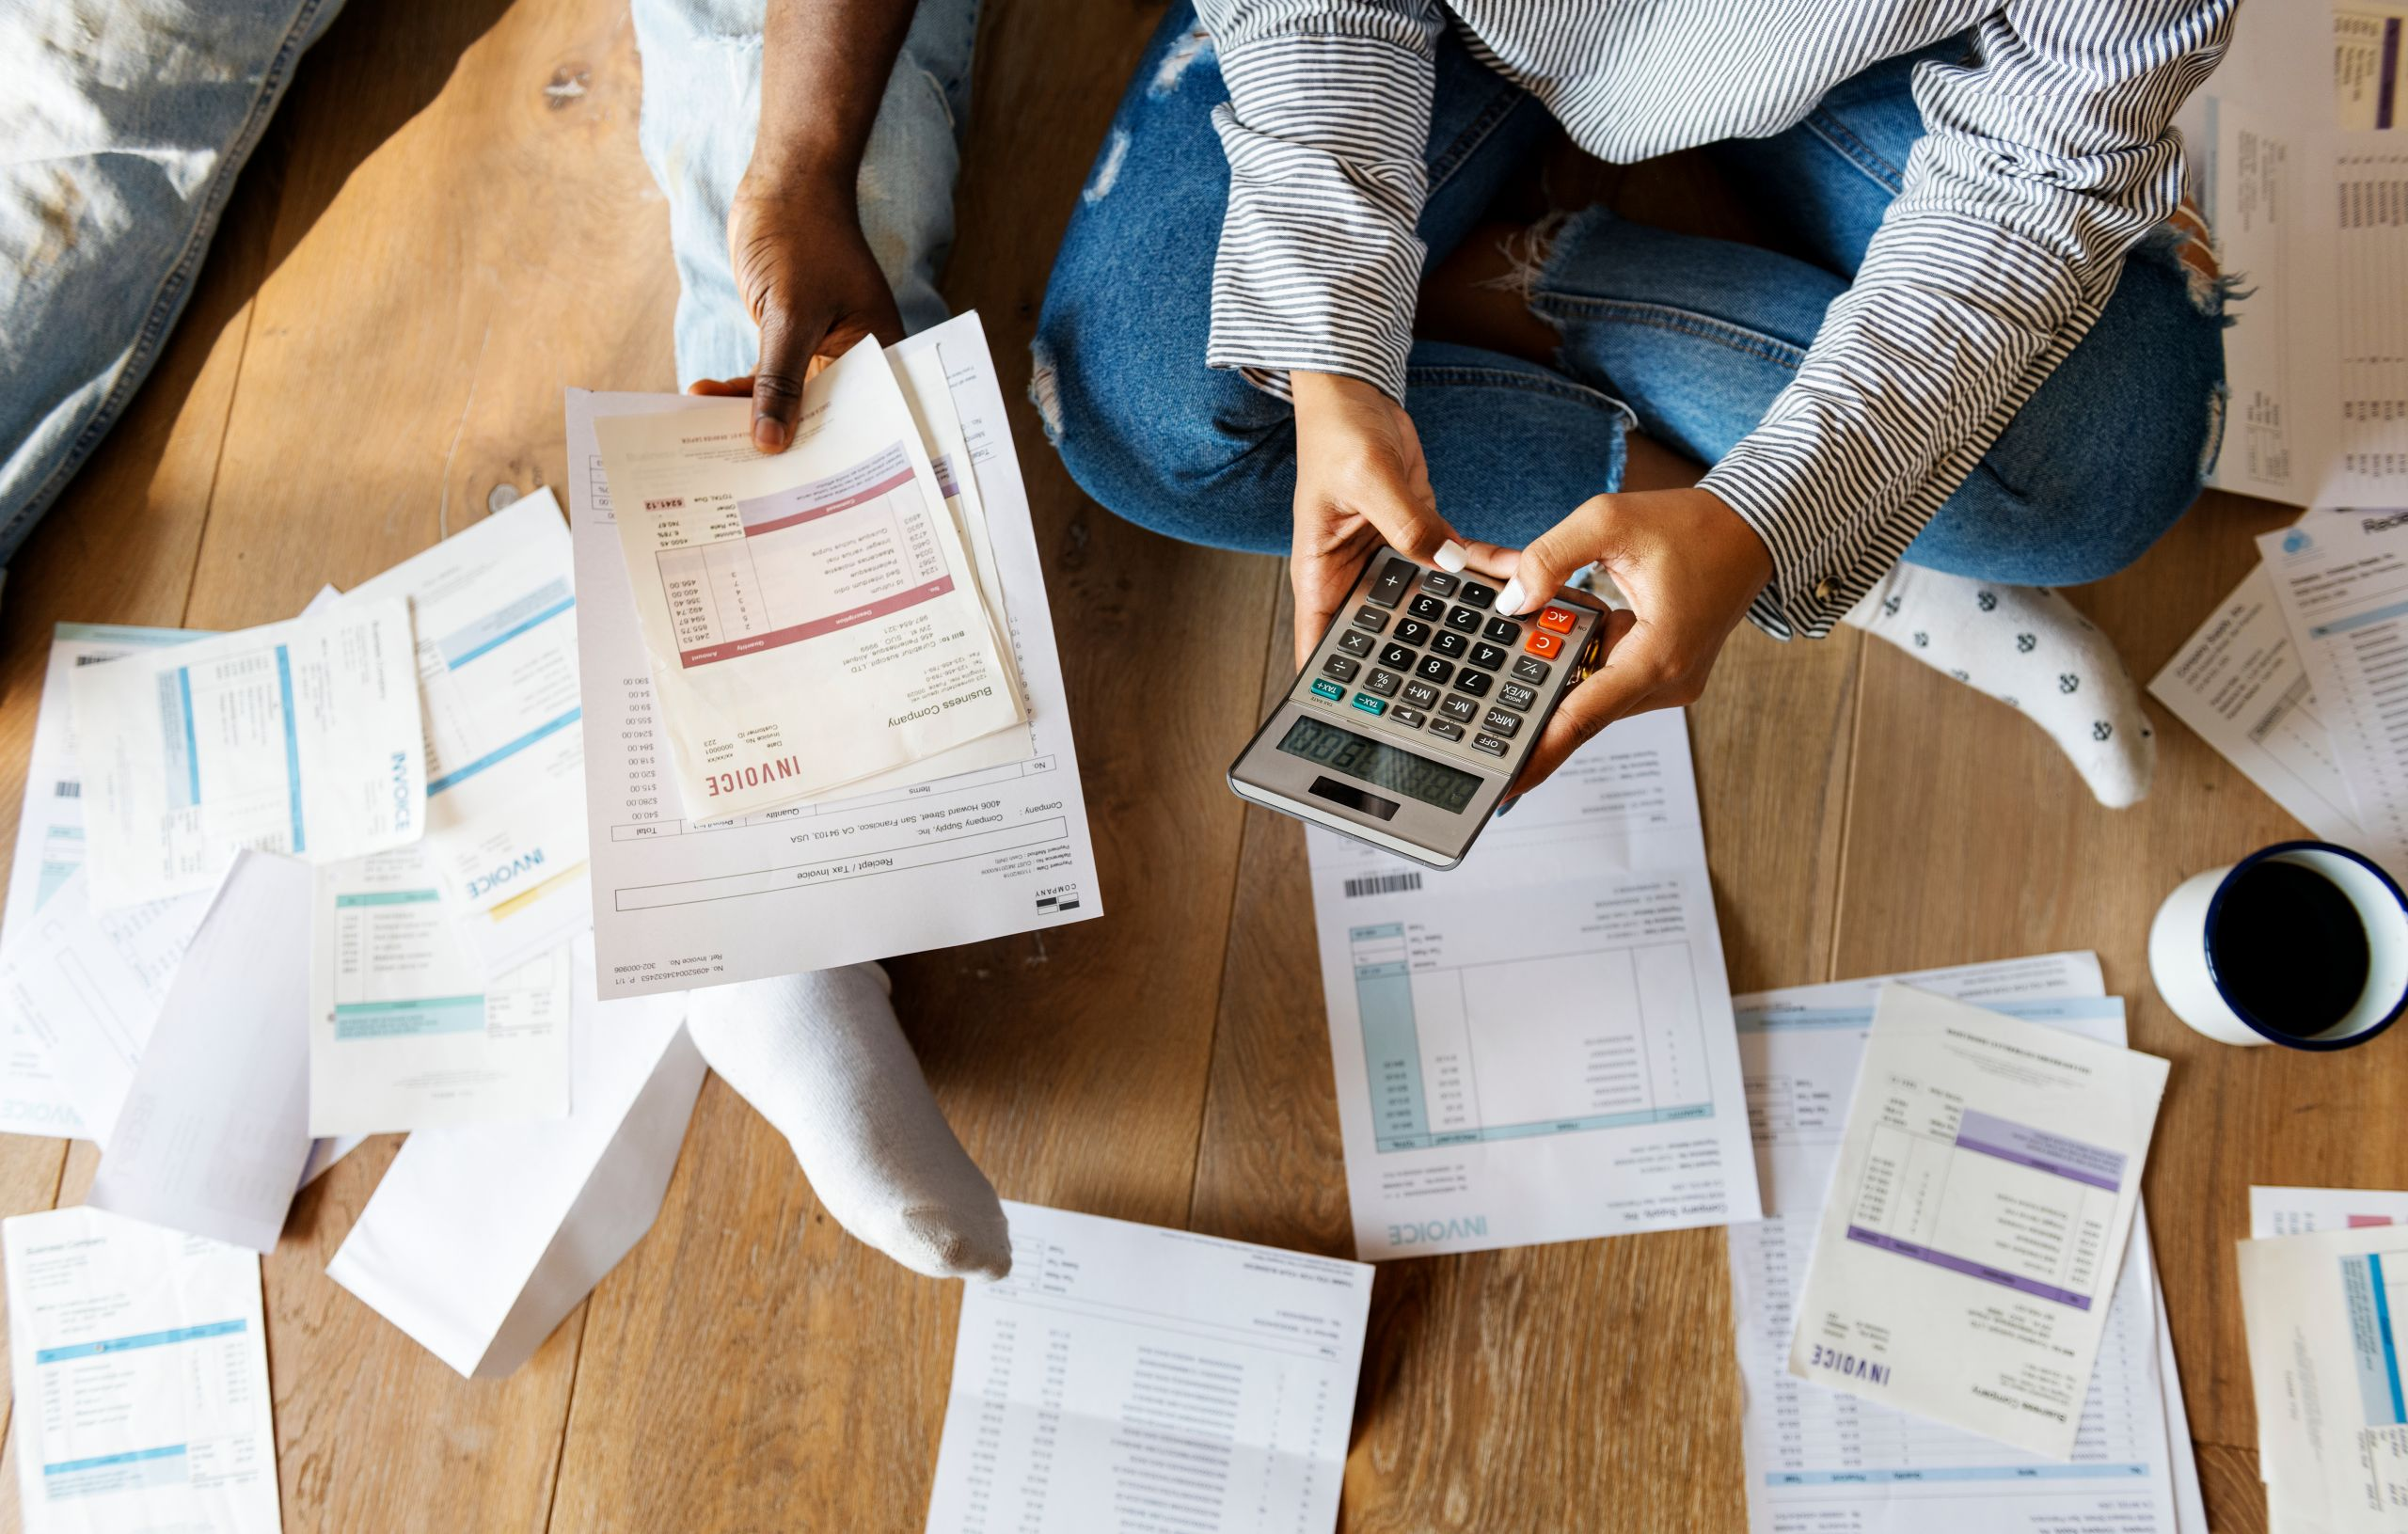 Calculating Debt with Invoices on Wood Floor